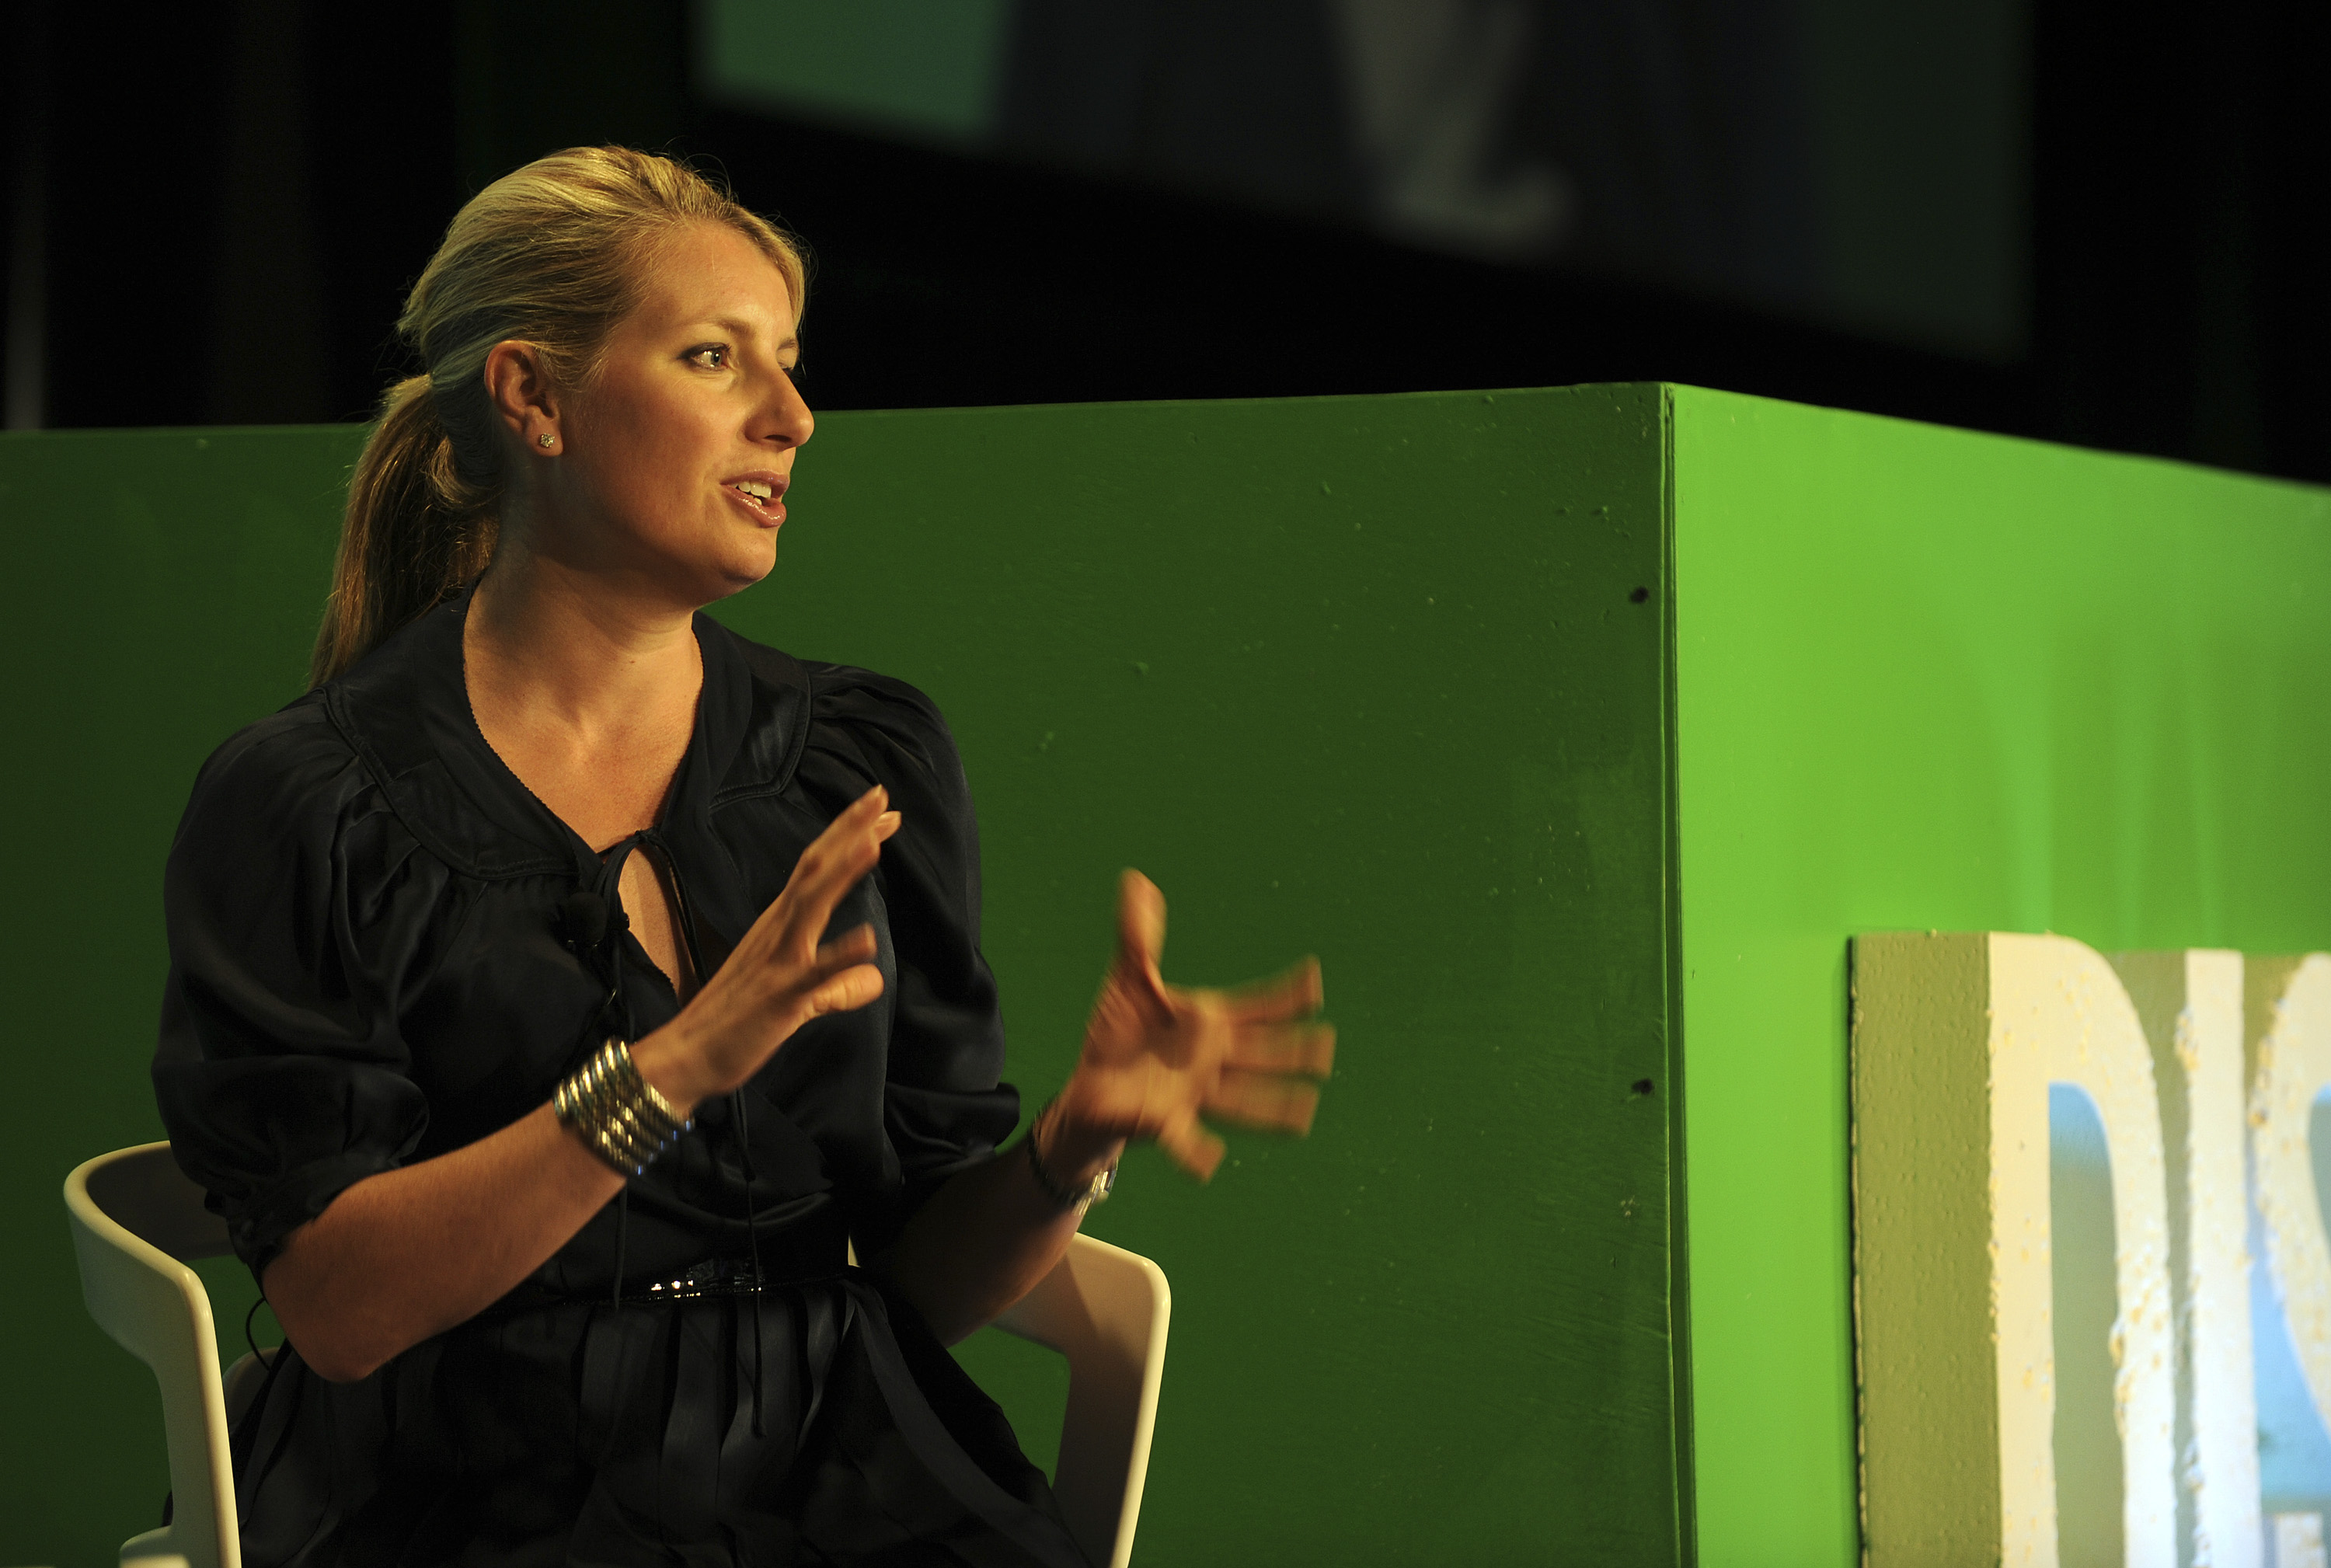 Key Speakers At TechCrunch Disrupt NYC